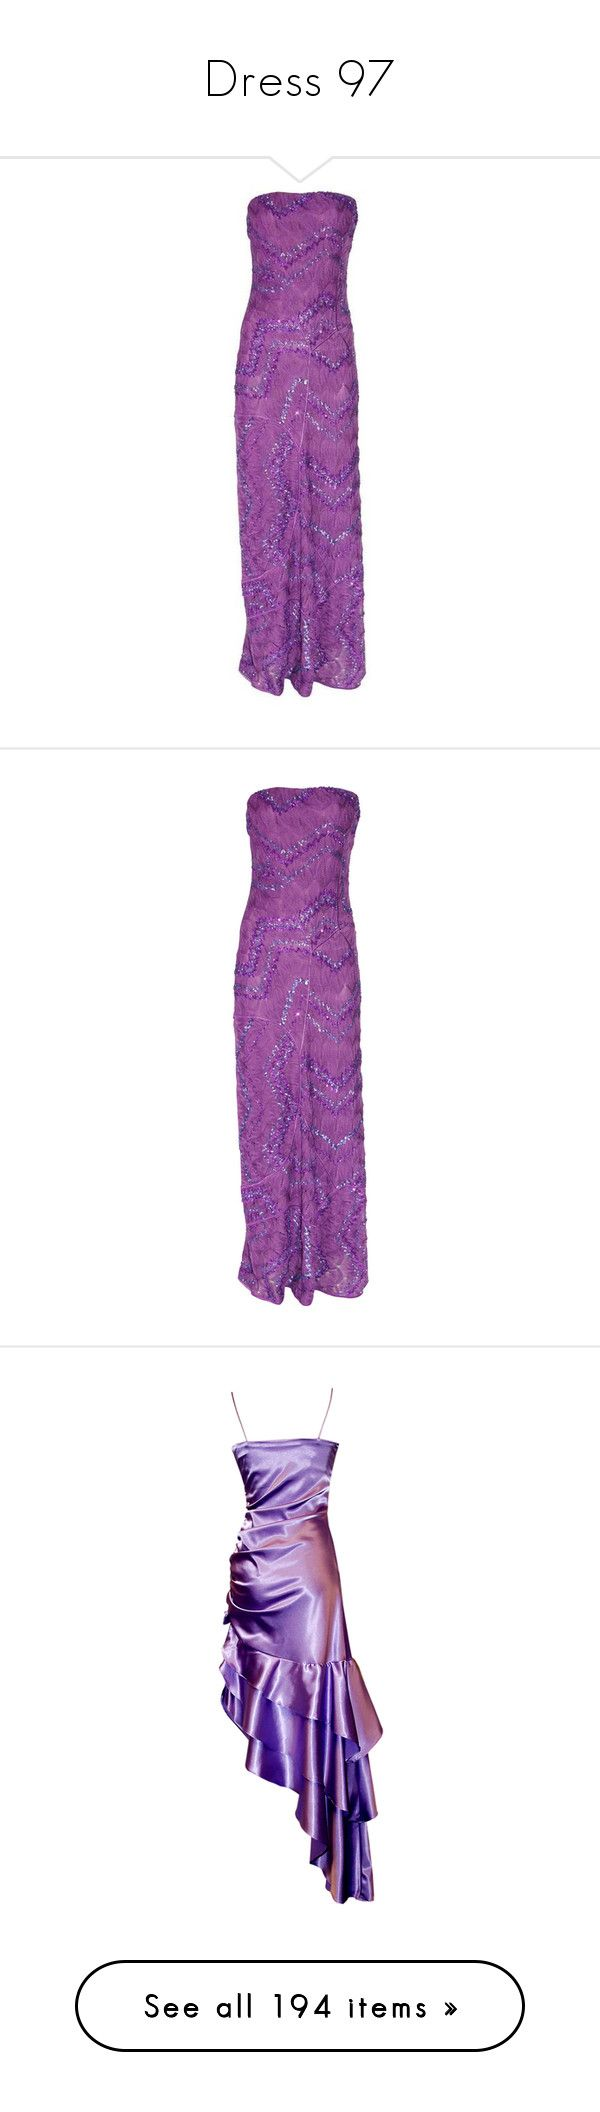 """""""Dress 97"""" by katiemarilexa ❤ liked on Polyvore featuring dresses, gowns, evening gowns, purple, corset dress, sequin dress, purple evening dresses, purple sequined dresses, purple gown and missoni"""